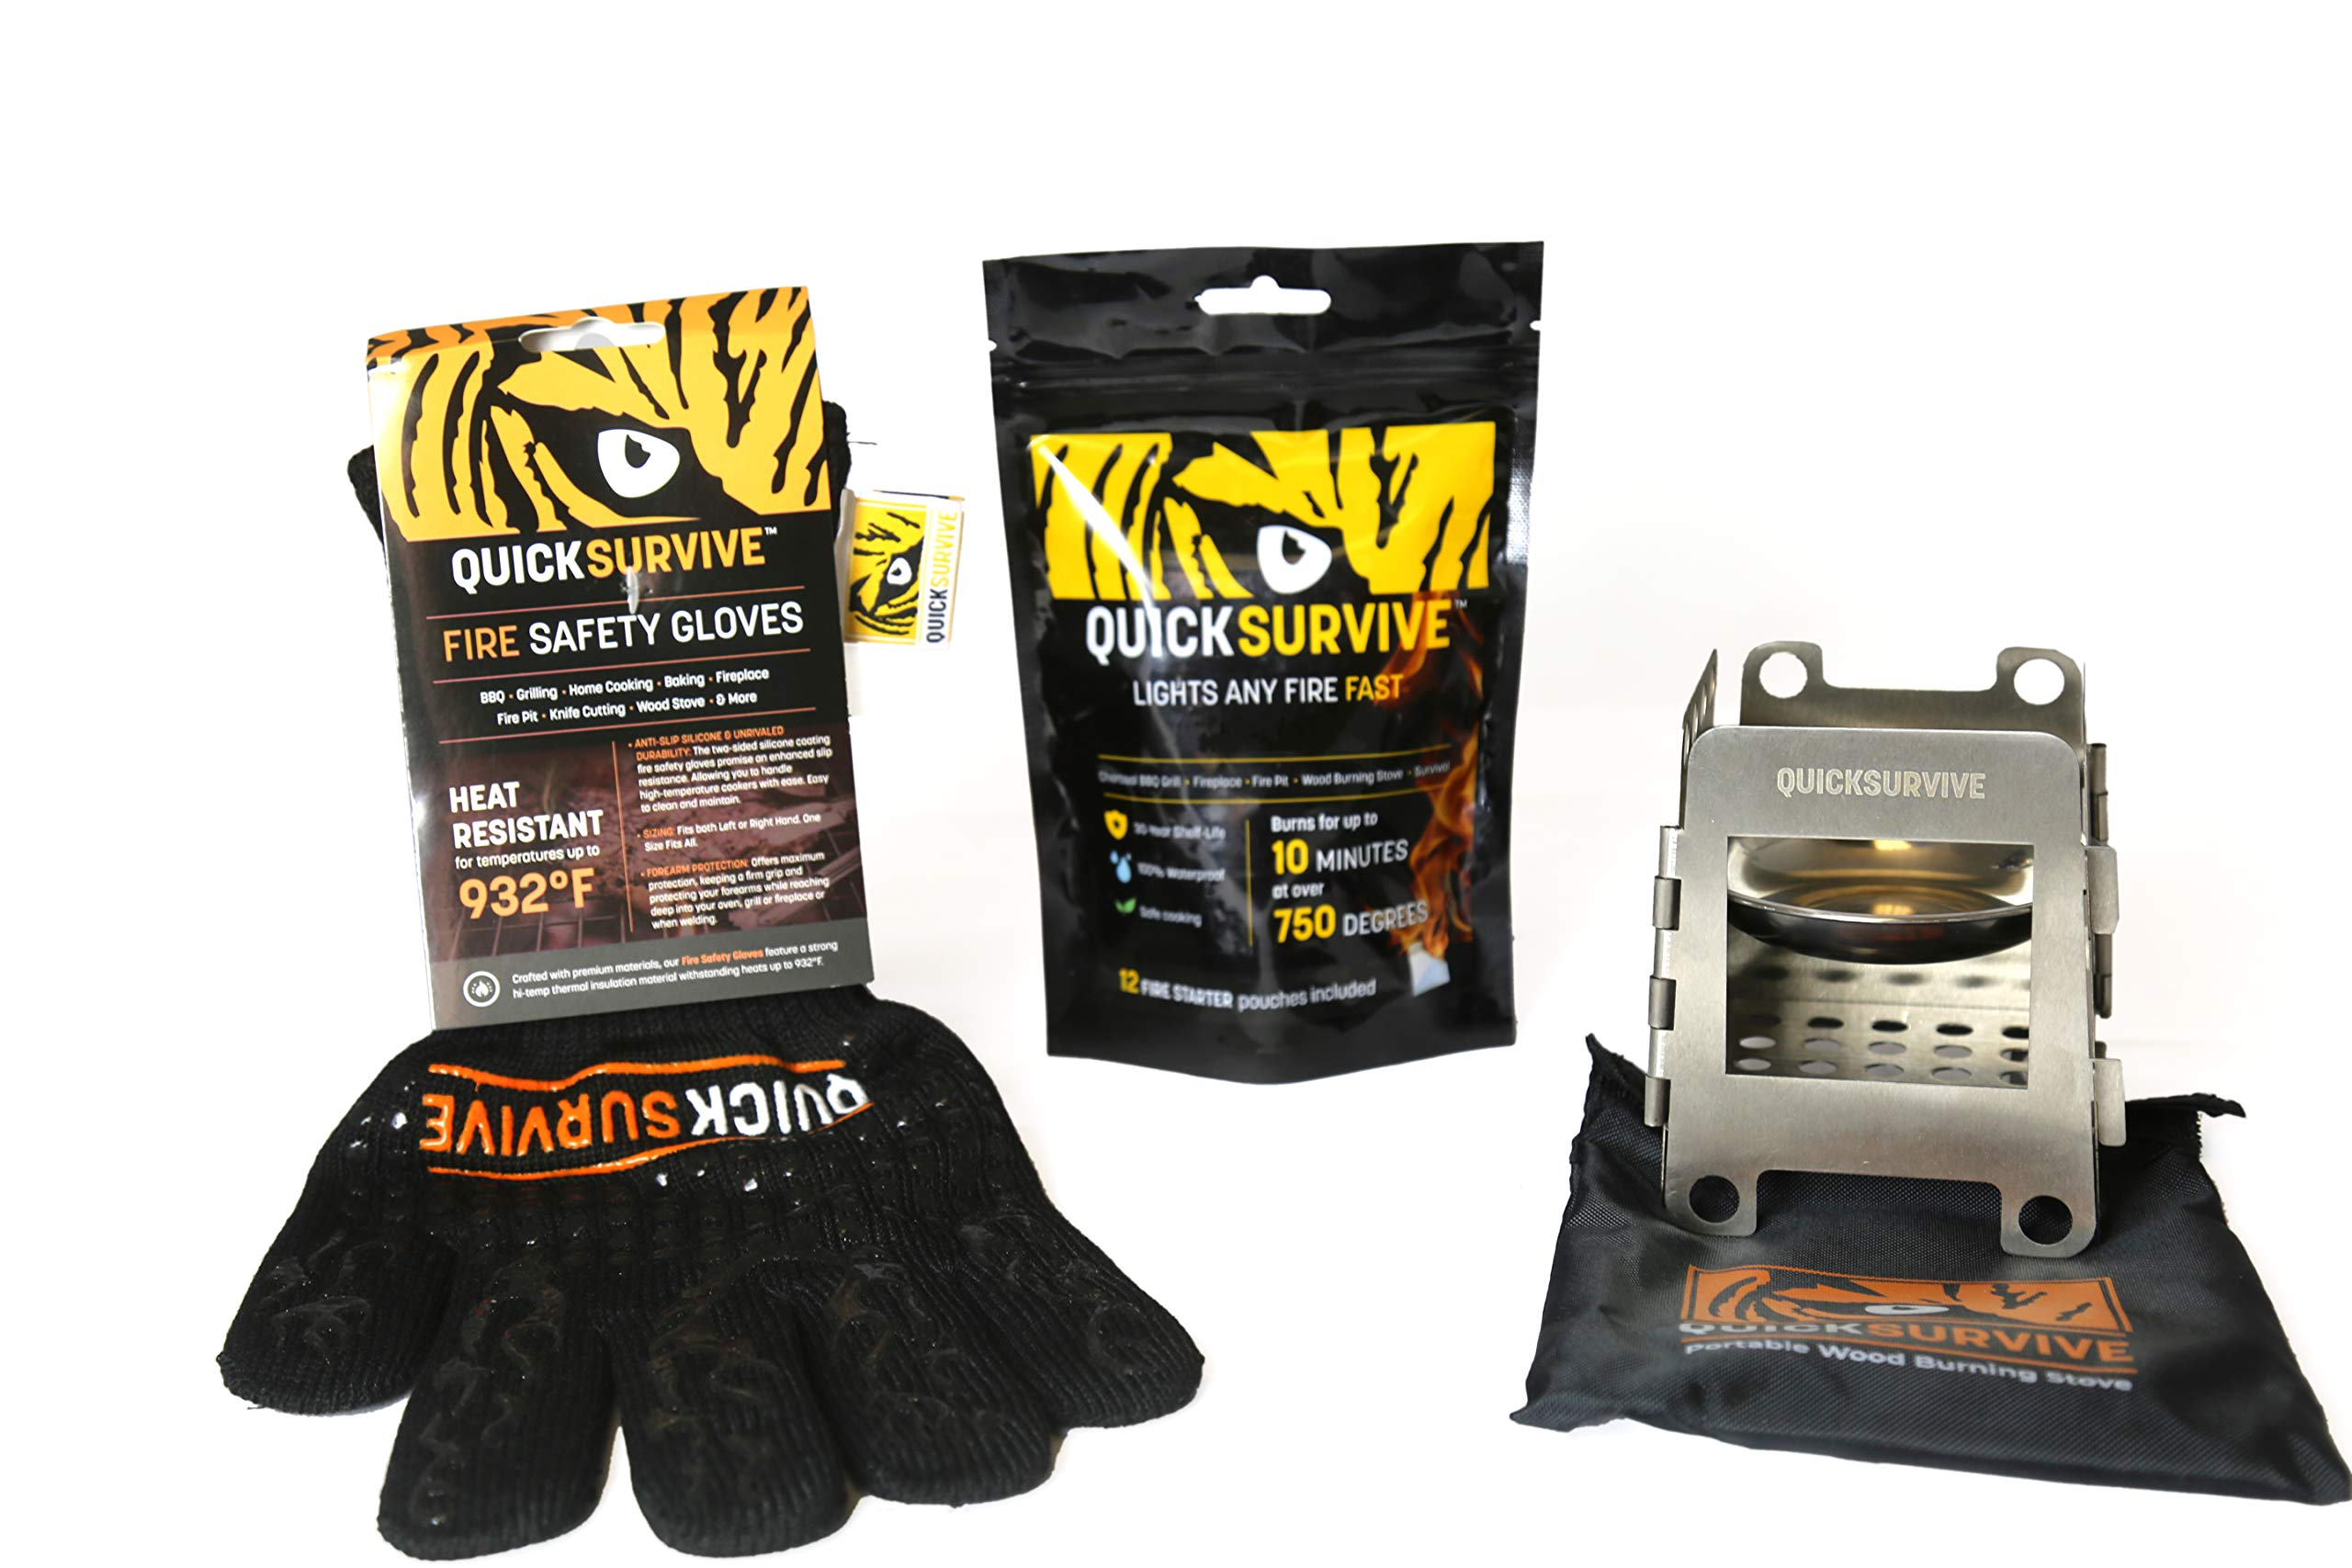 QUICKSURVIVE Mini Survival Wood Burning Stove, 12 Pack All Purpose Fire Starters and Heat Resistant Fire Safety Glove by QUICKSURVIVE